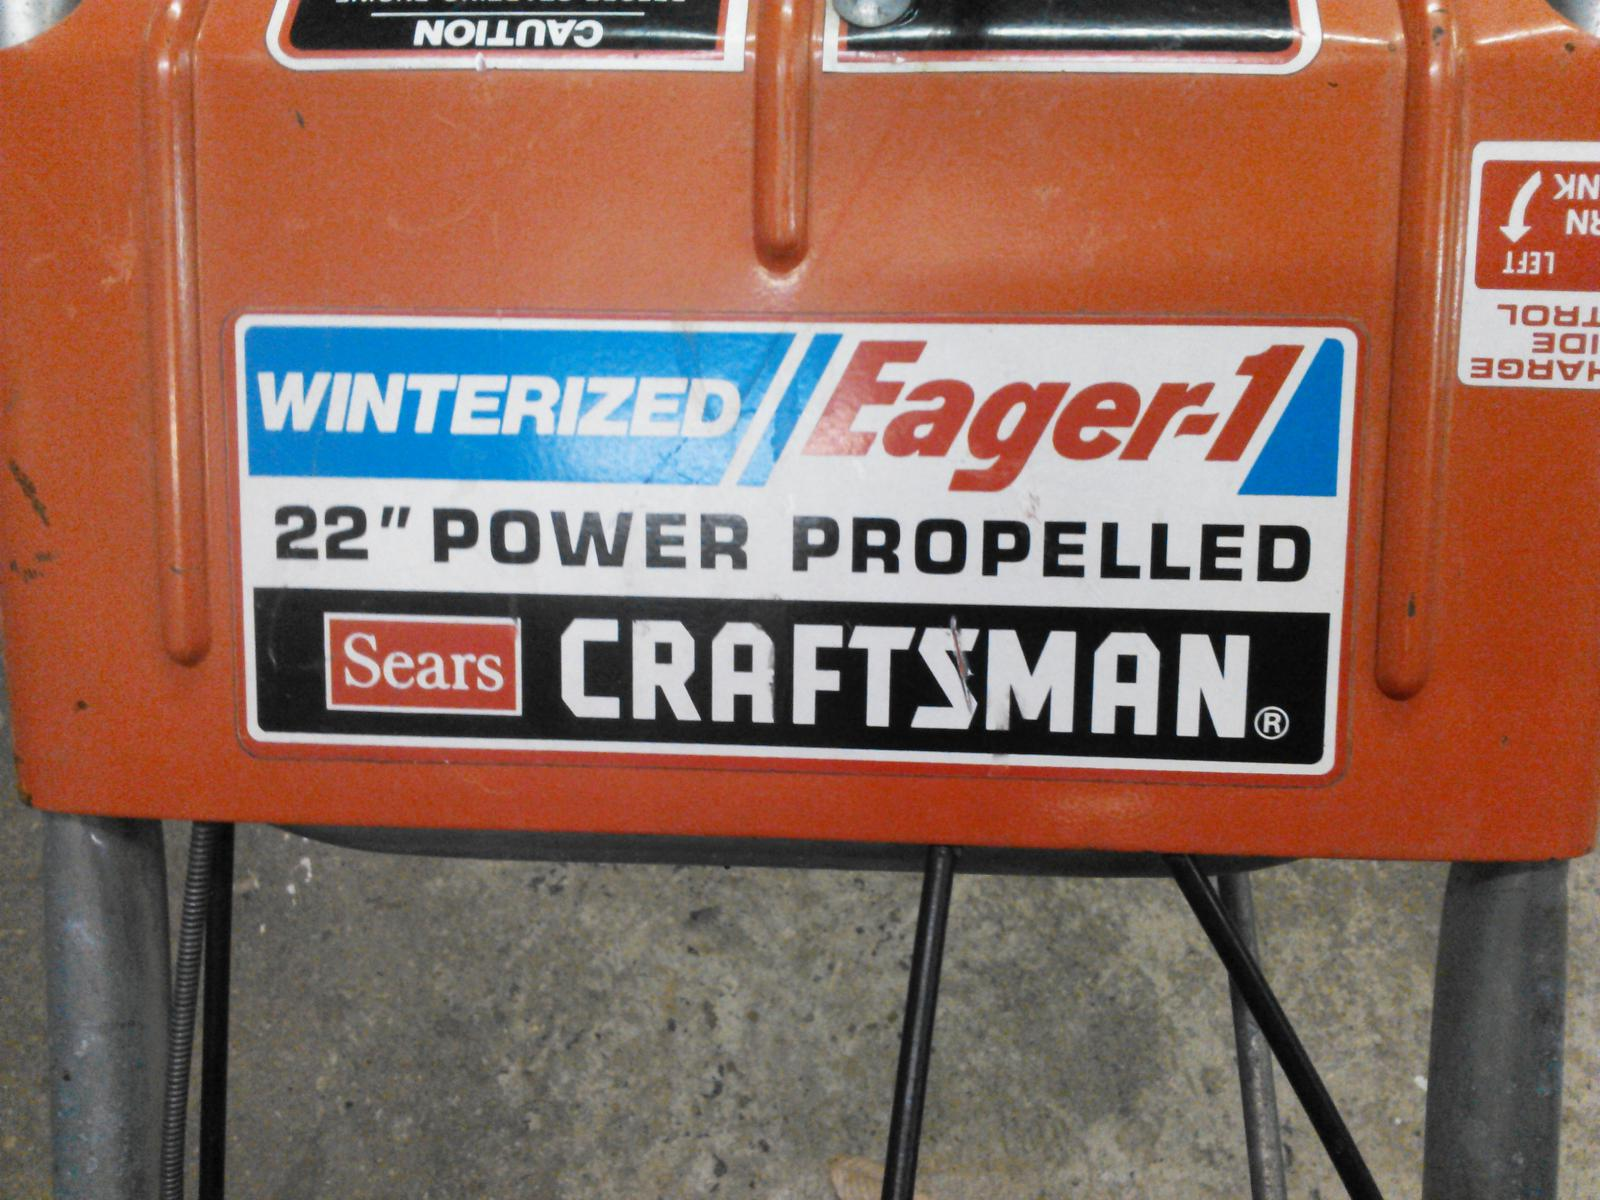 winterized/Eager-1 (craftsman) - Snowblower Forum : Snow Blower Forums